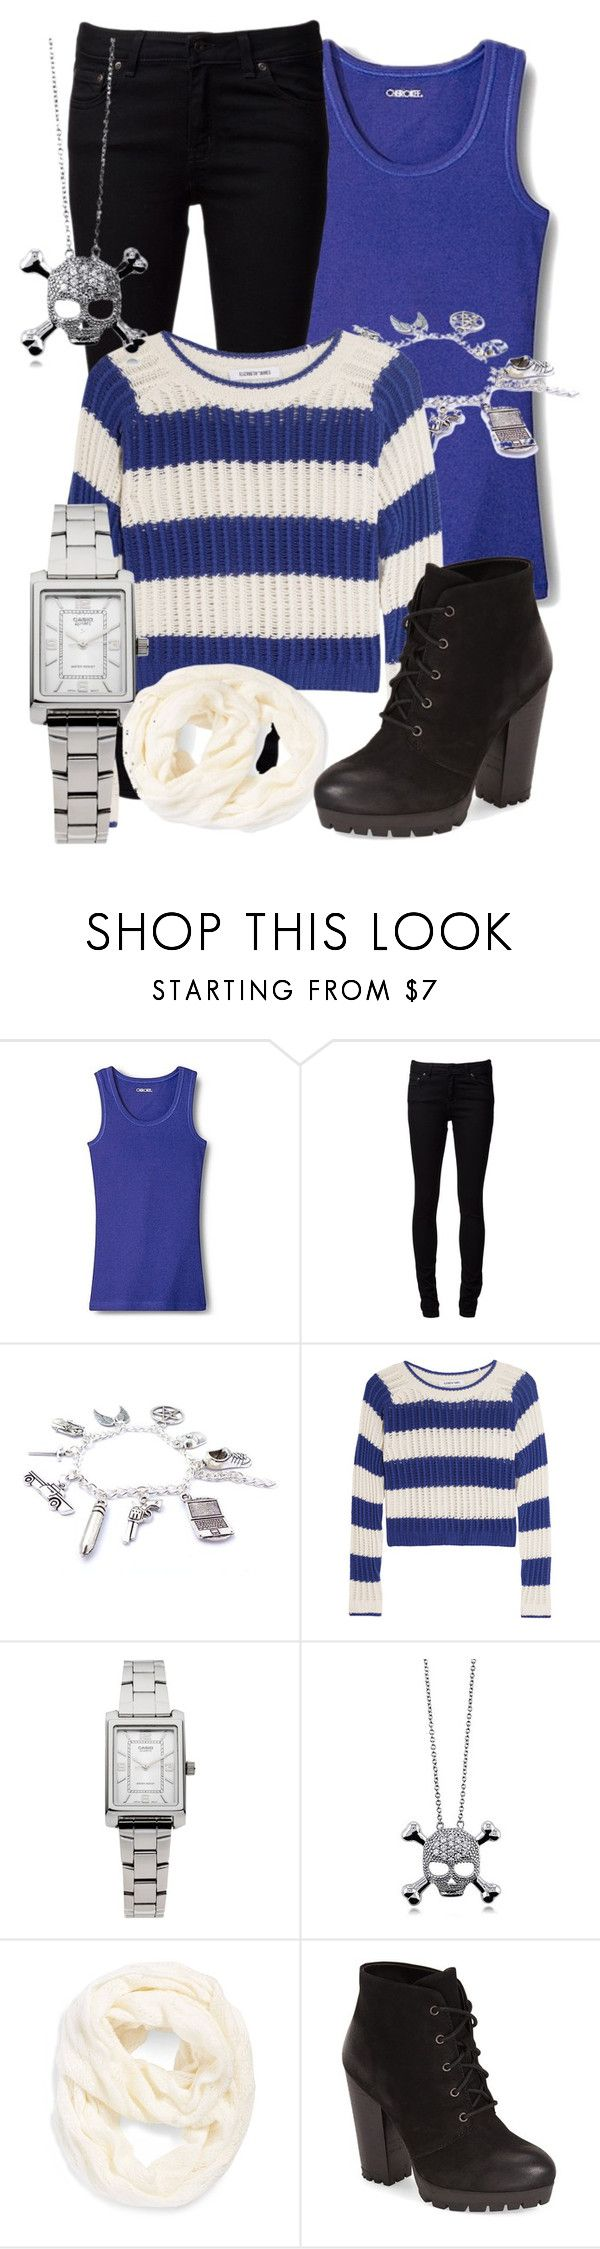 """""""set 4"""" by bebe6121985 on Polyvore featuring moda, Cherokee, Naked & Famous, Elizabeth and James, Casio, BERRICLE, Echo i Steve Madden"""